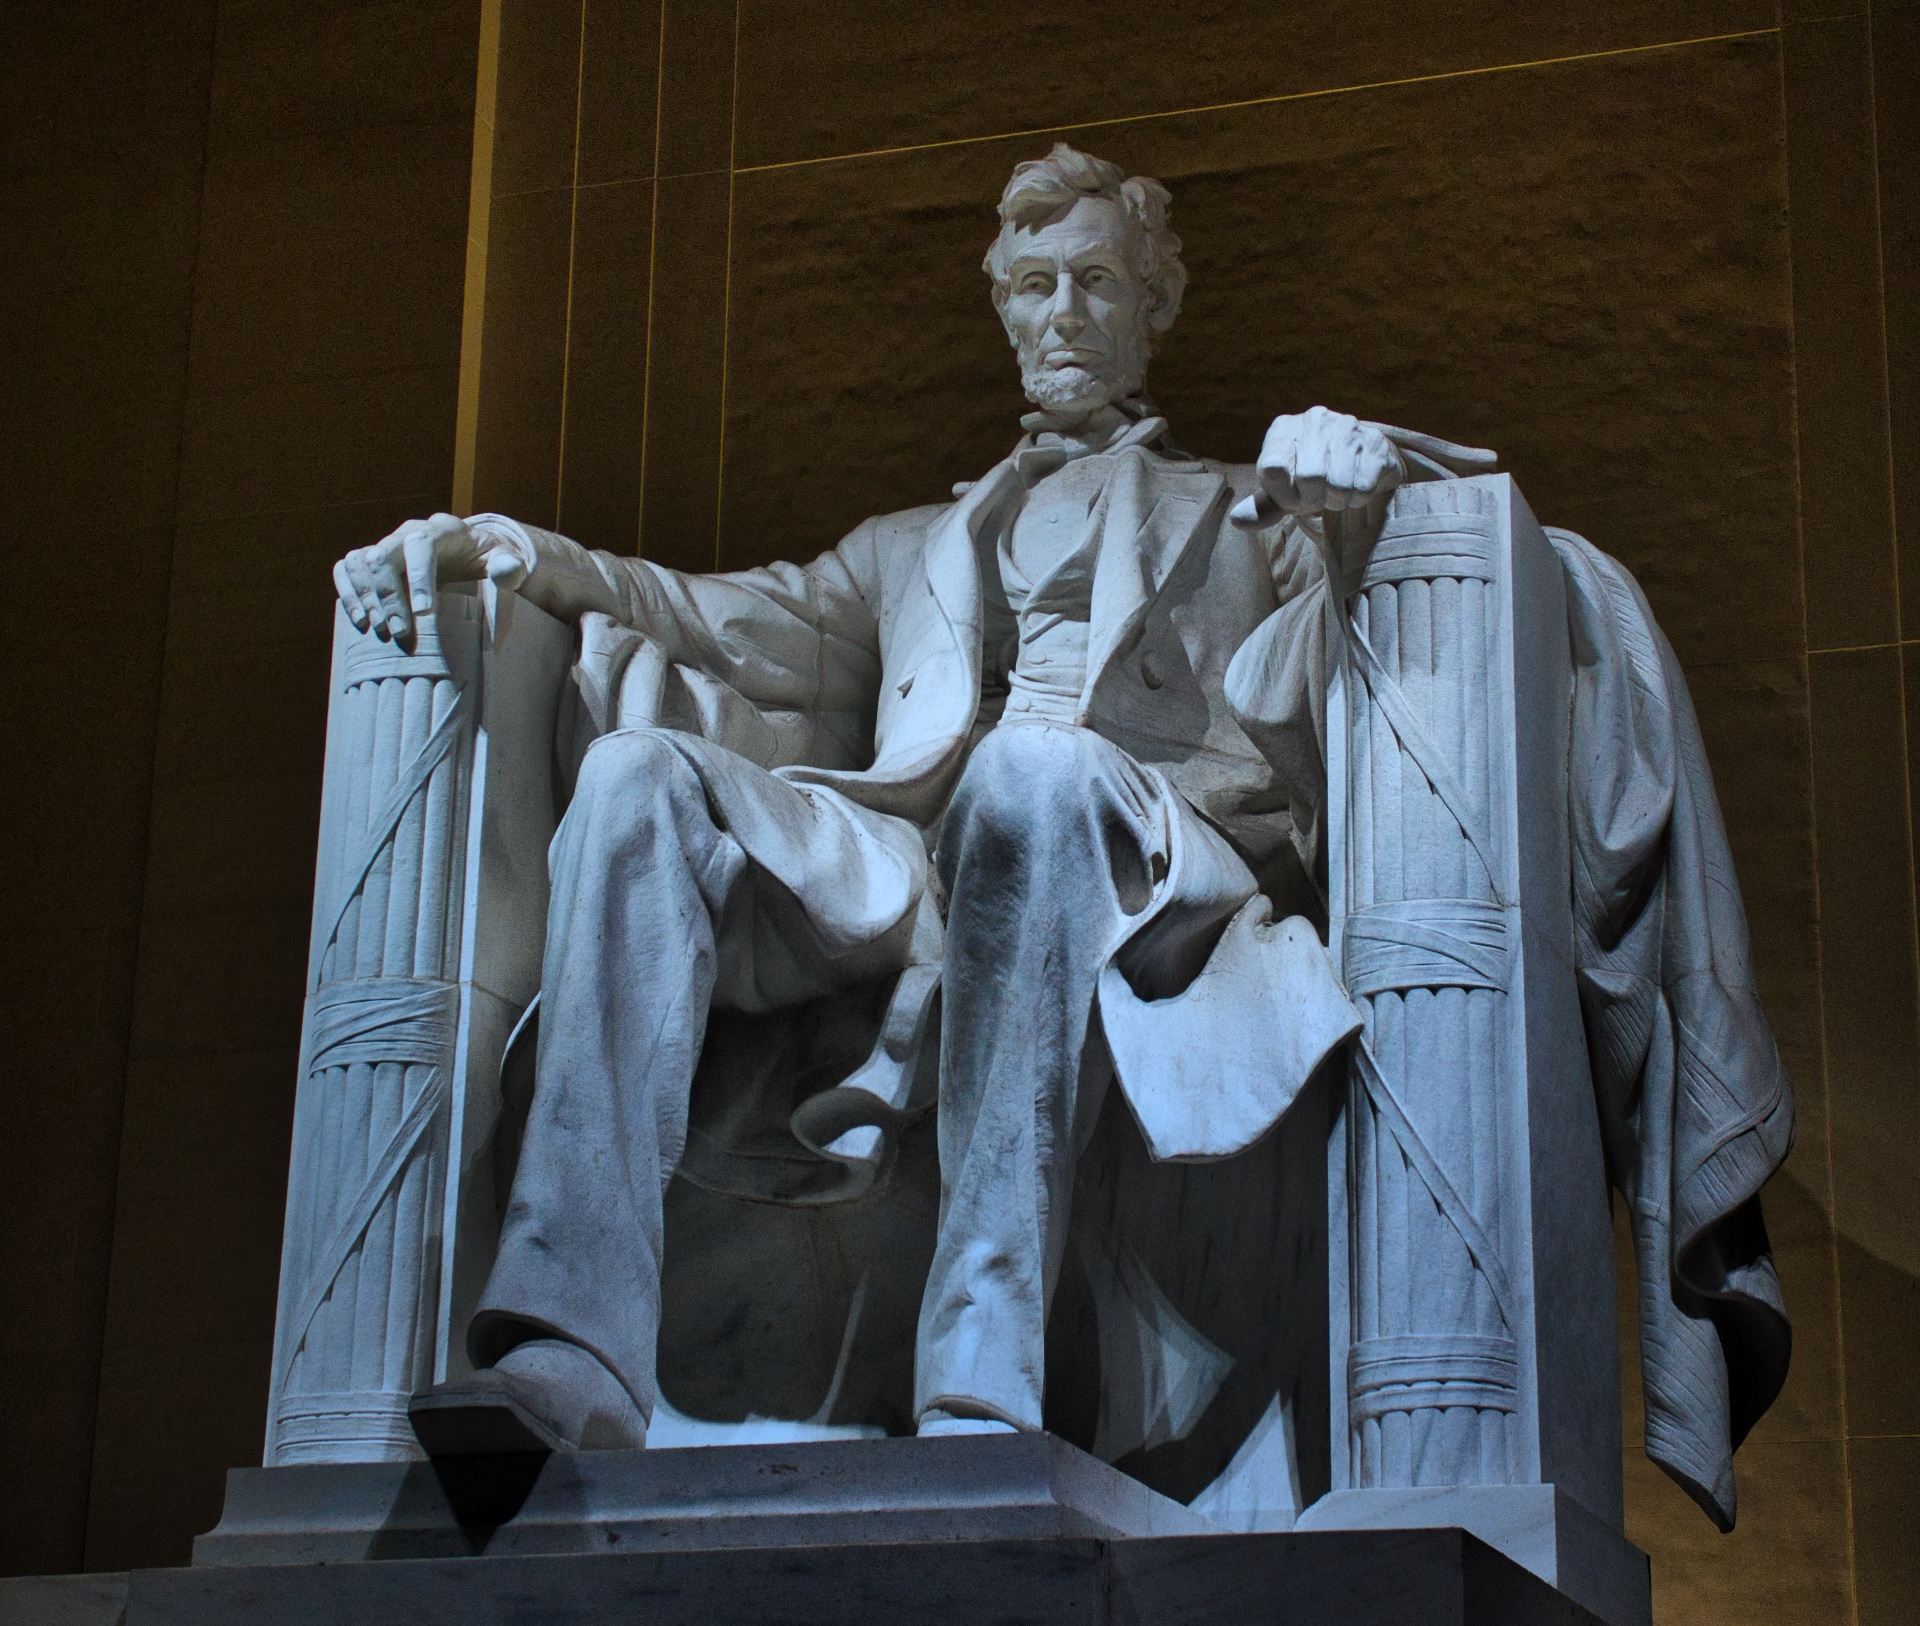 Statue of Abraham Lincoln at Lincoln Memorial in Washington D.C.